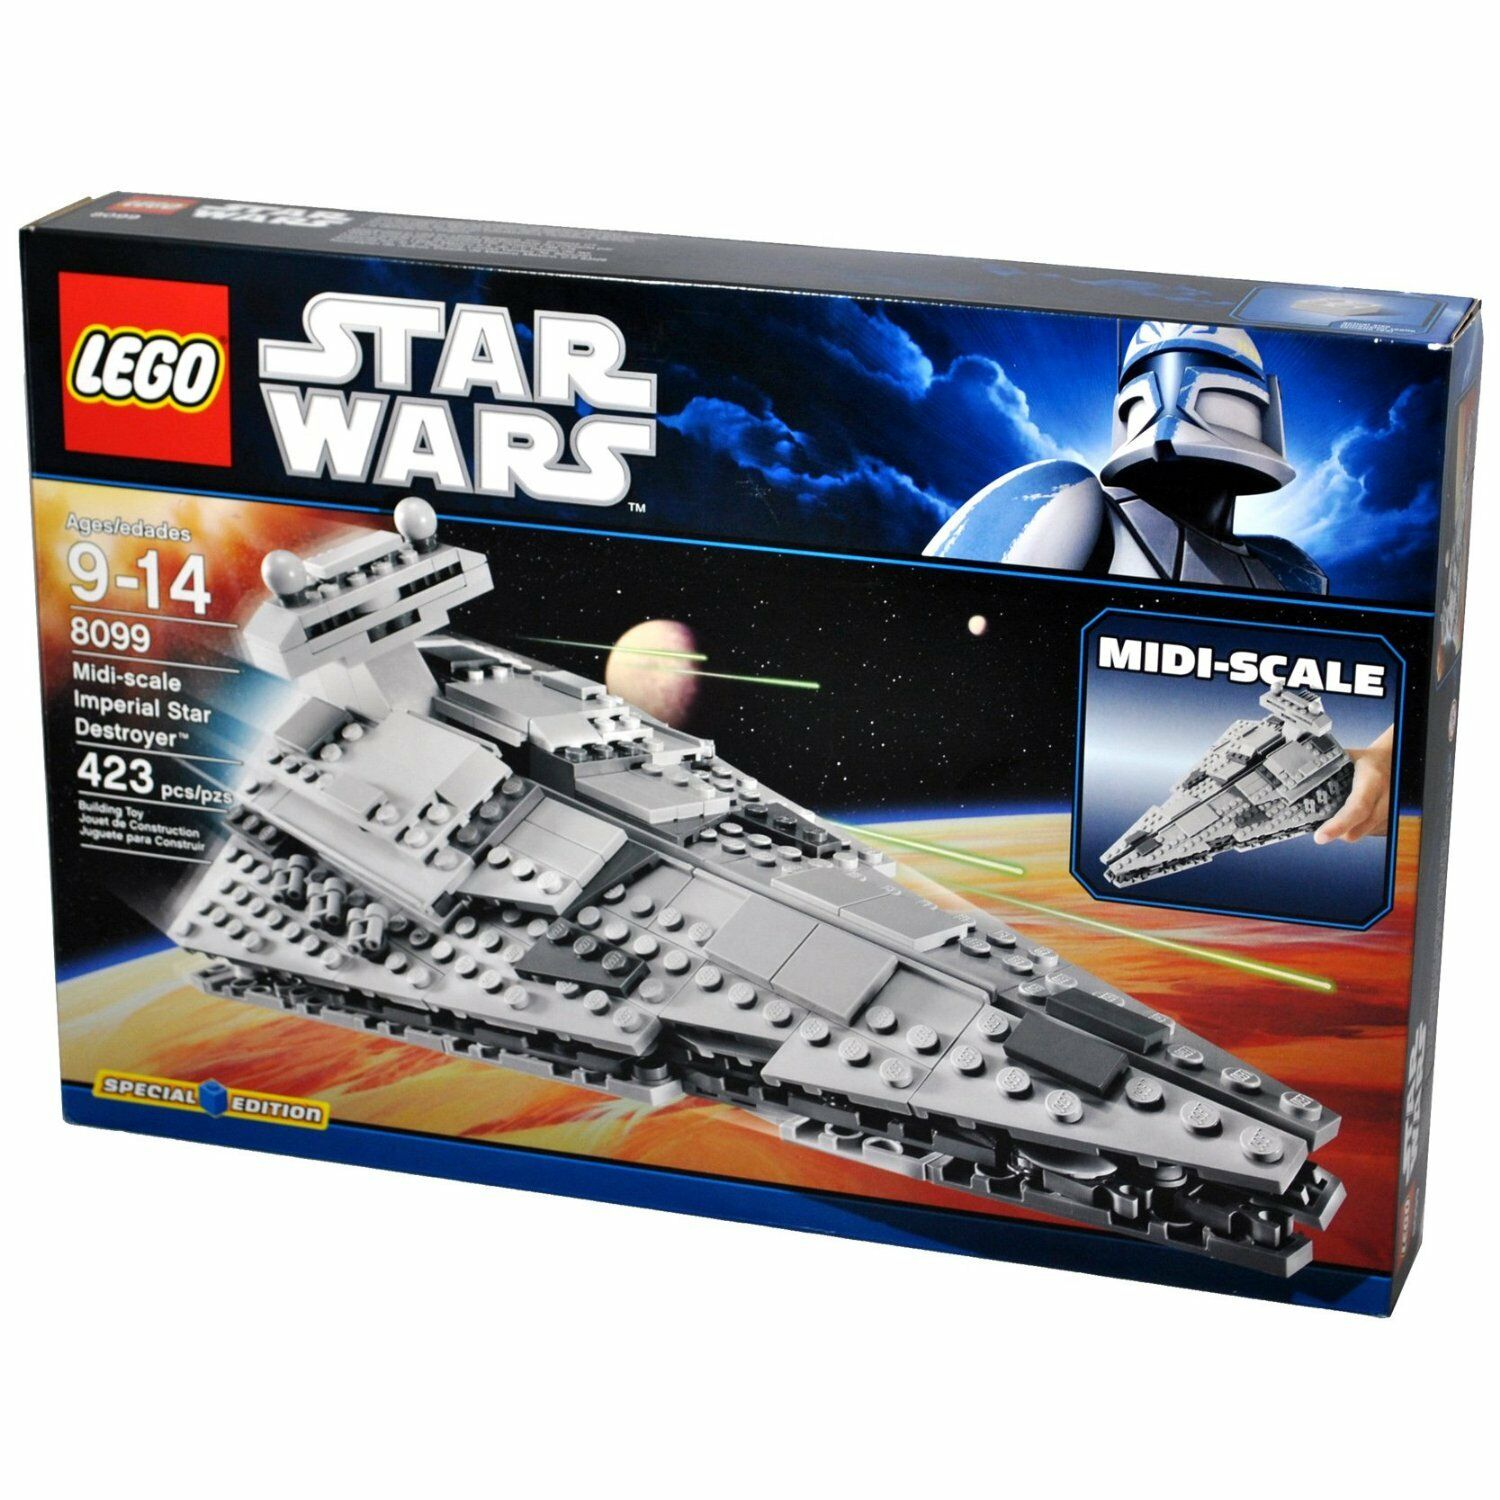 Star Wars LEGO Imperial Star Destroyer   New Factory Sealed Midi-Scale